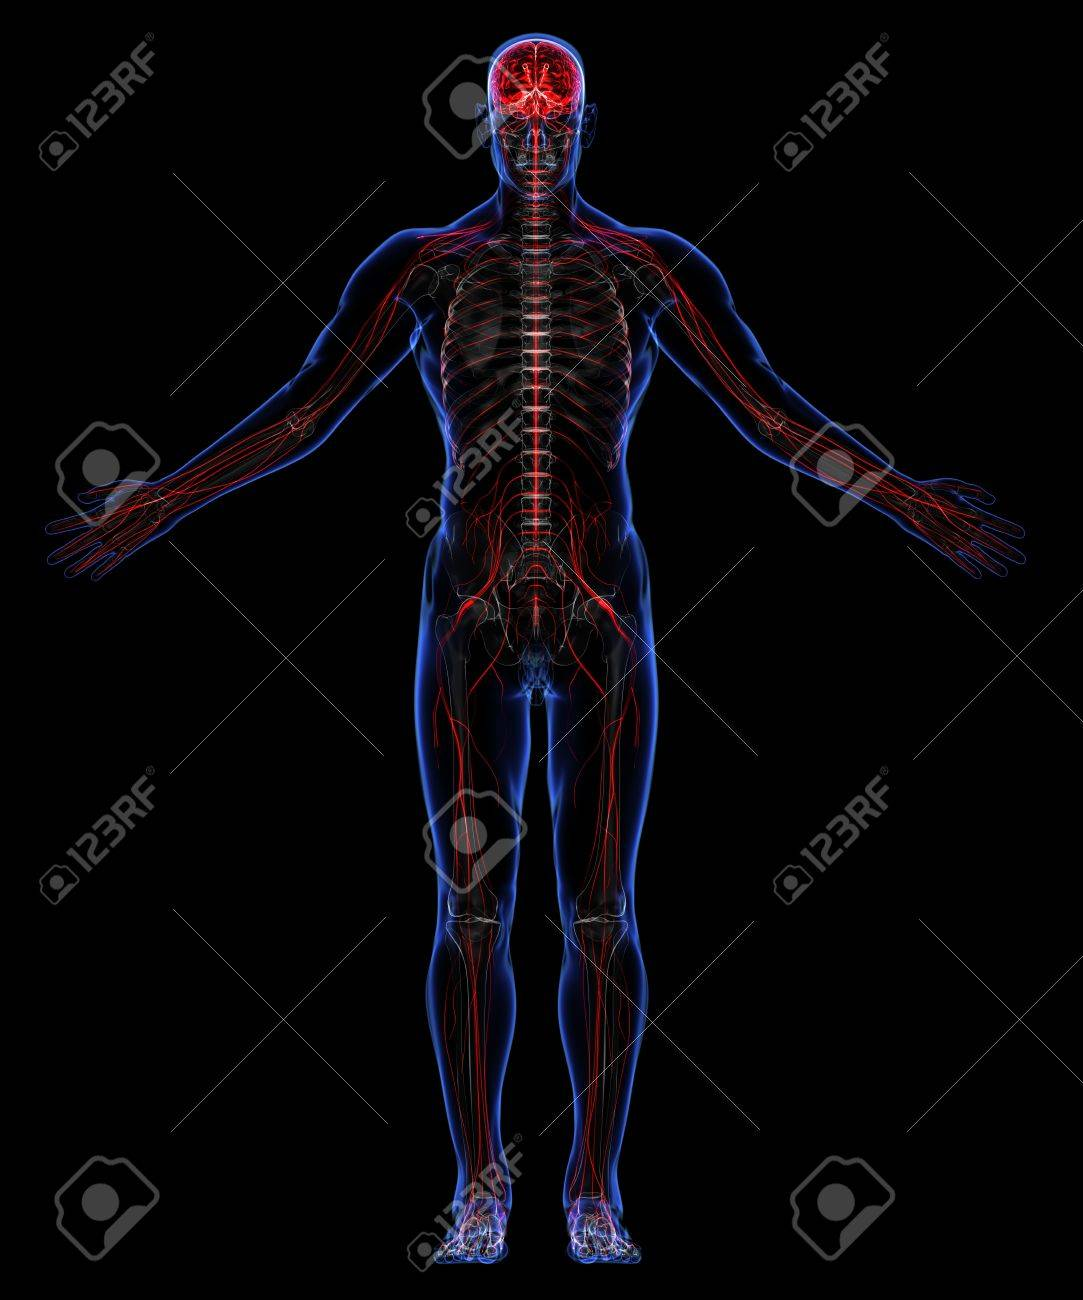 Human skeleton and nervous system Stock Photo - 18292531